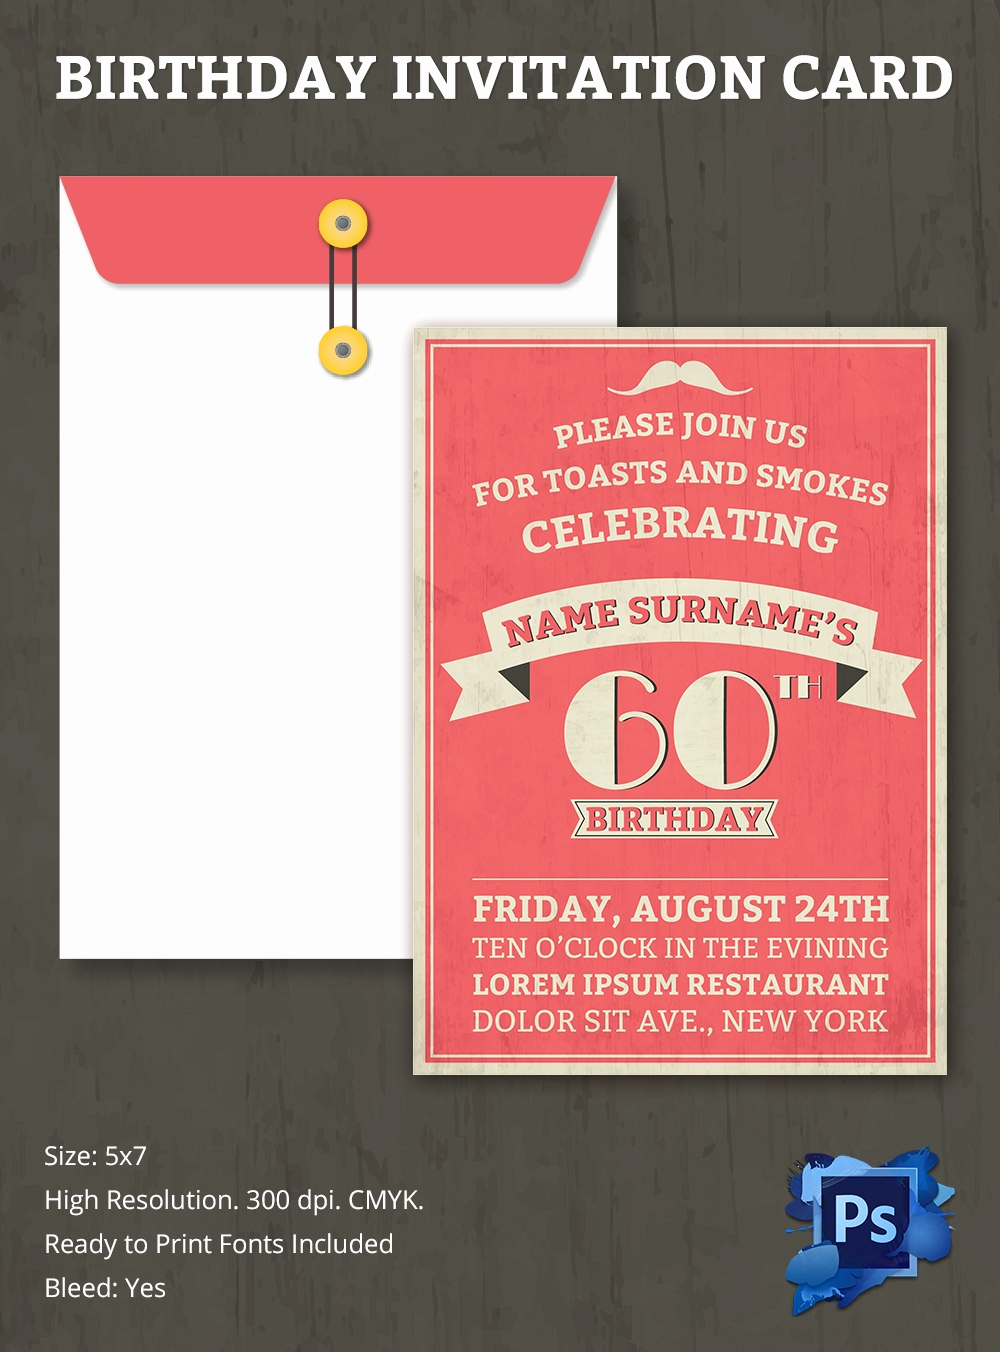 Birthday Invitation Card Template Luxury Birthday Invitation Template – 70 Free Psd format